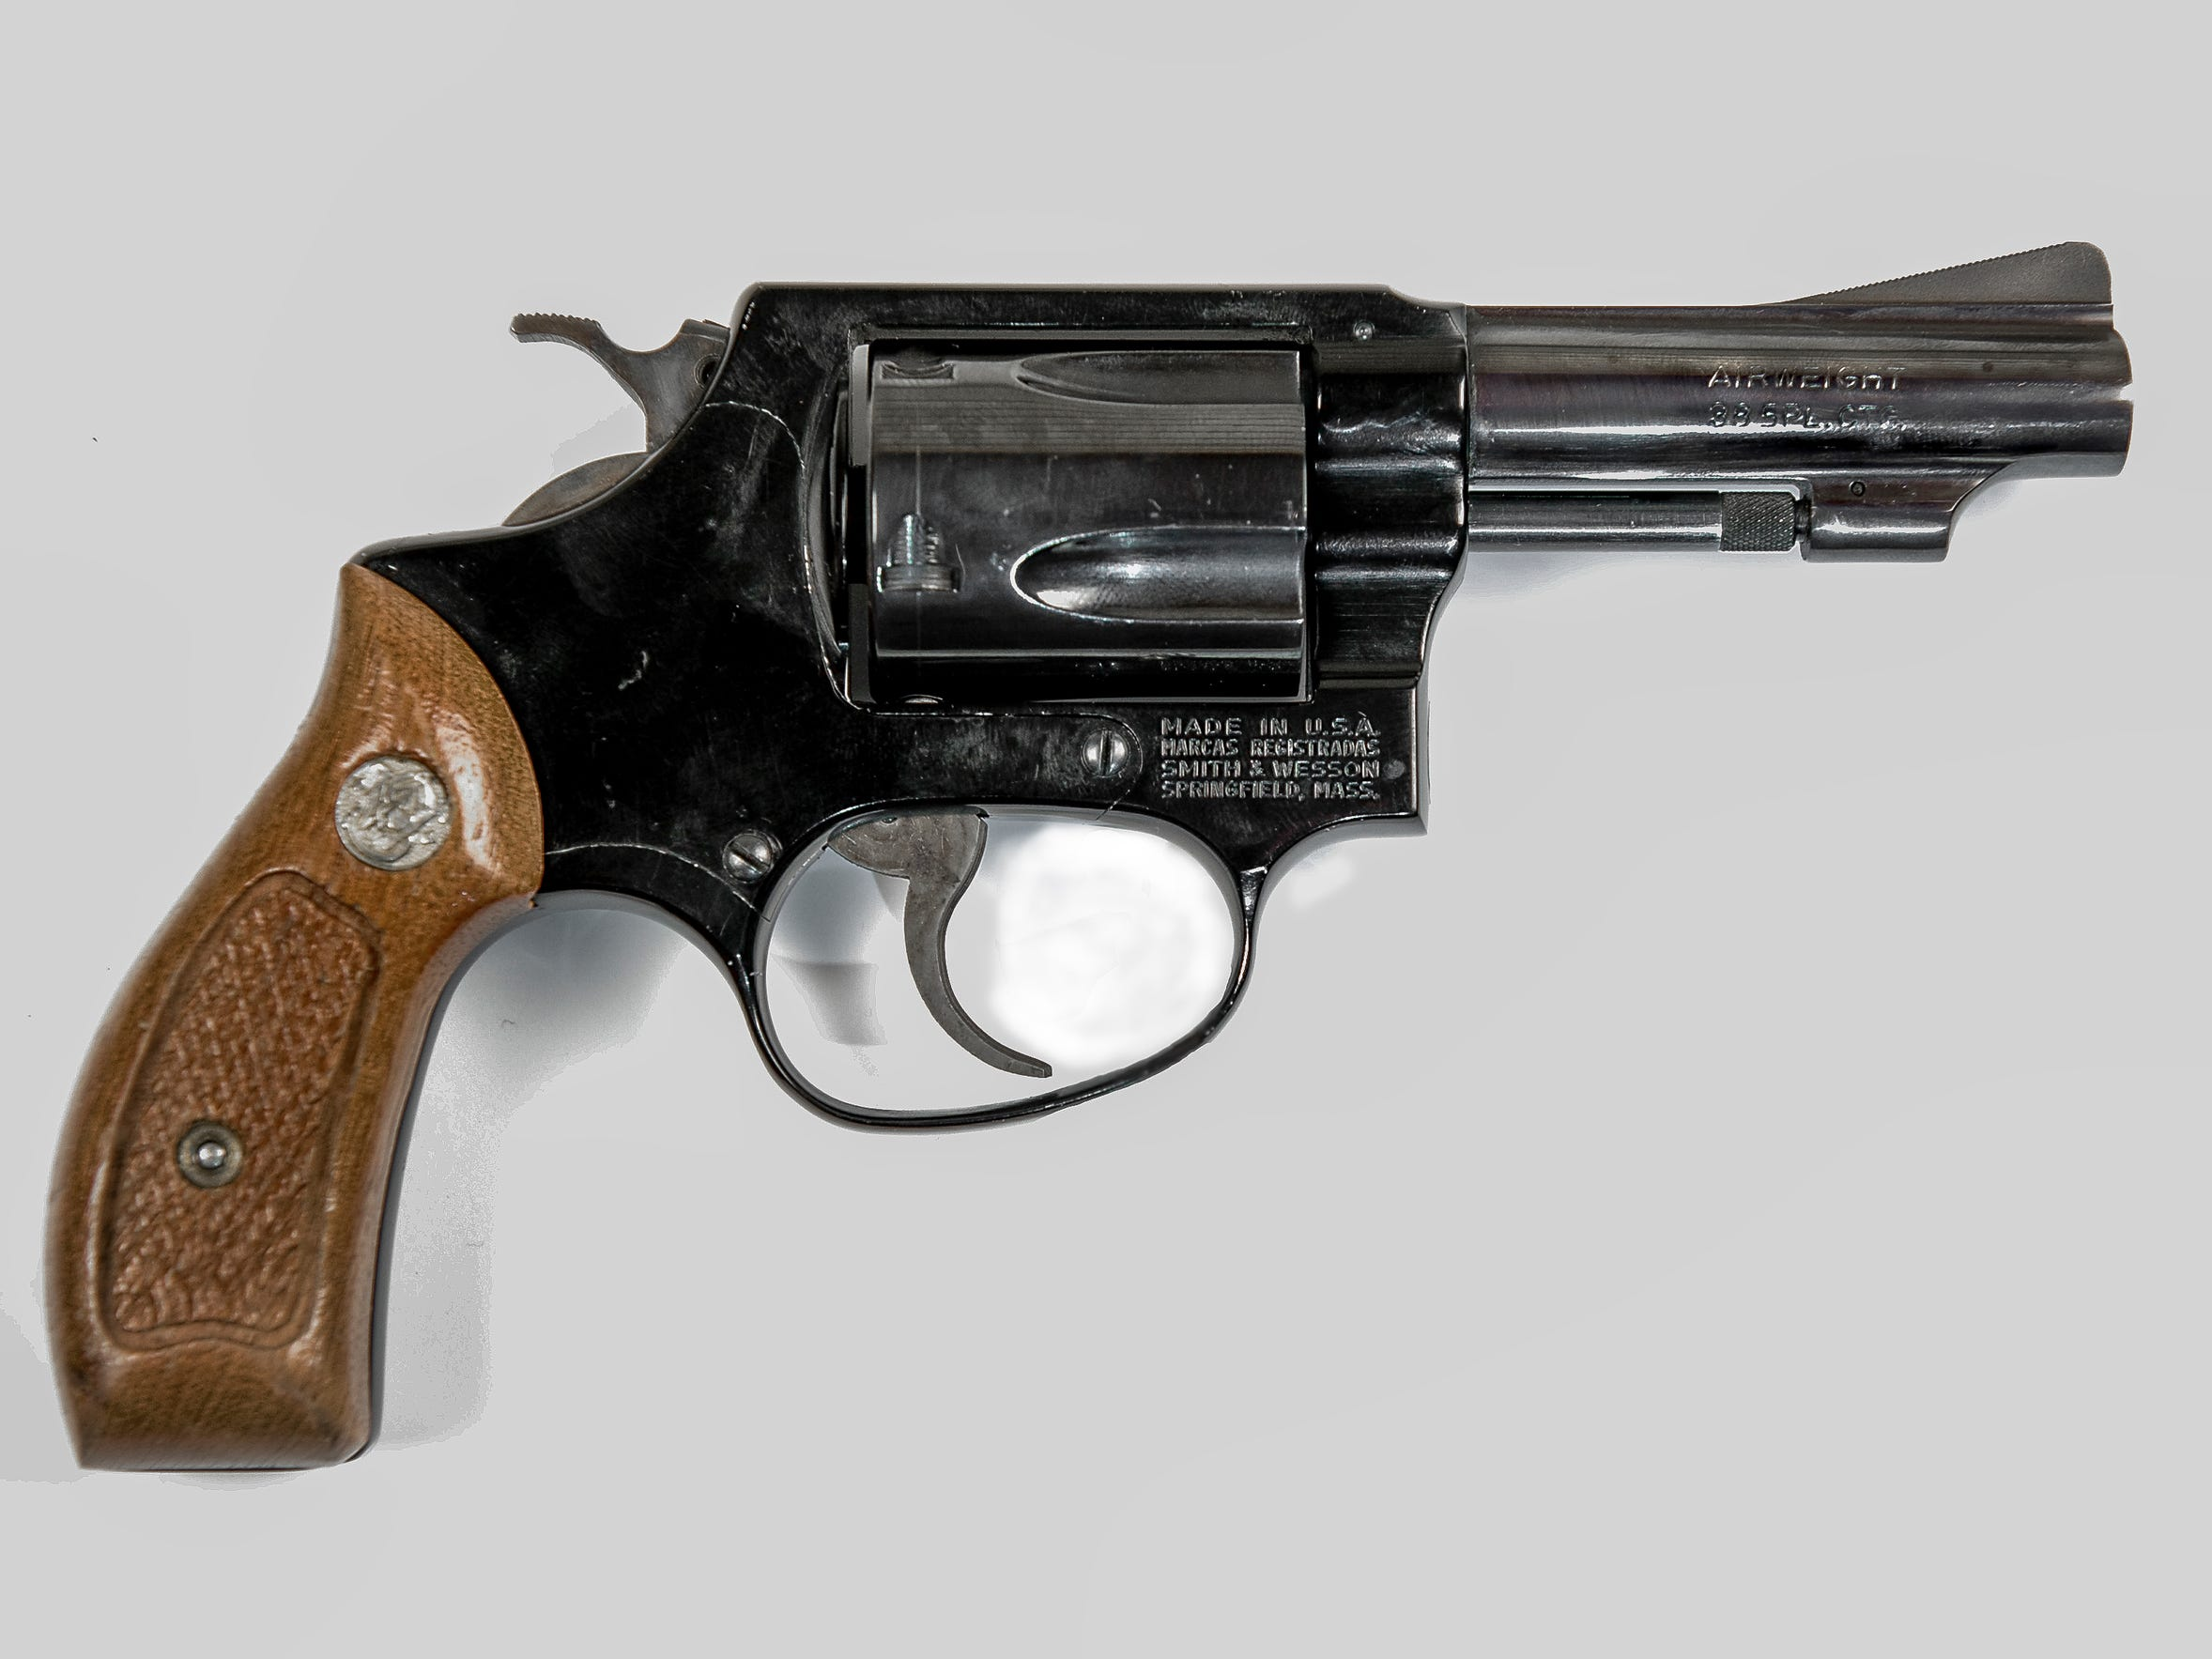 A .38-caliber revolver, similar to the gun used by